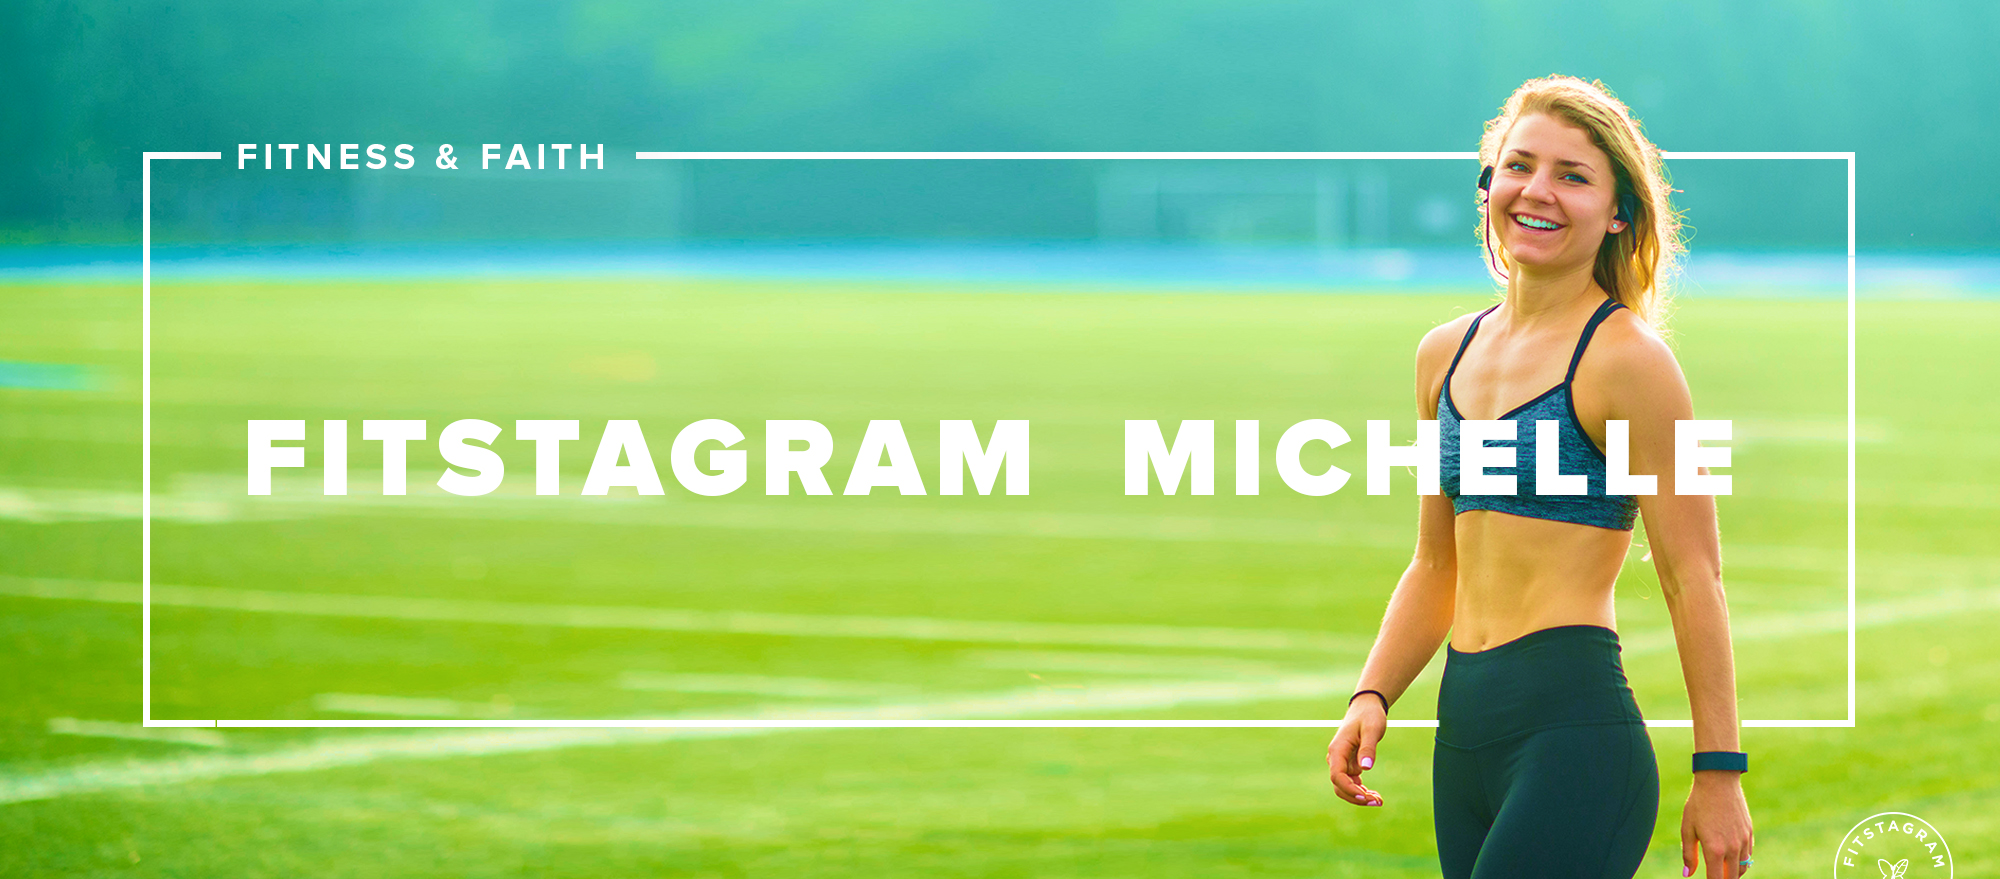 Fitstagram Michelle is a faith and fitness blogger with programs to help women know their worth and get fit